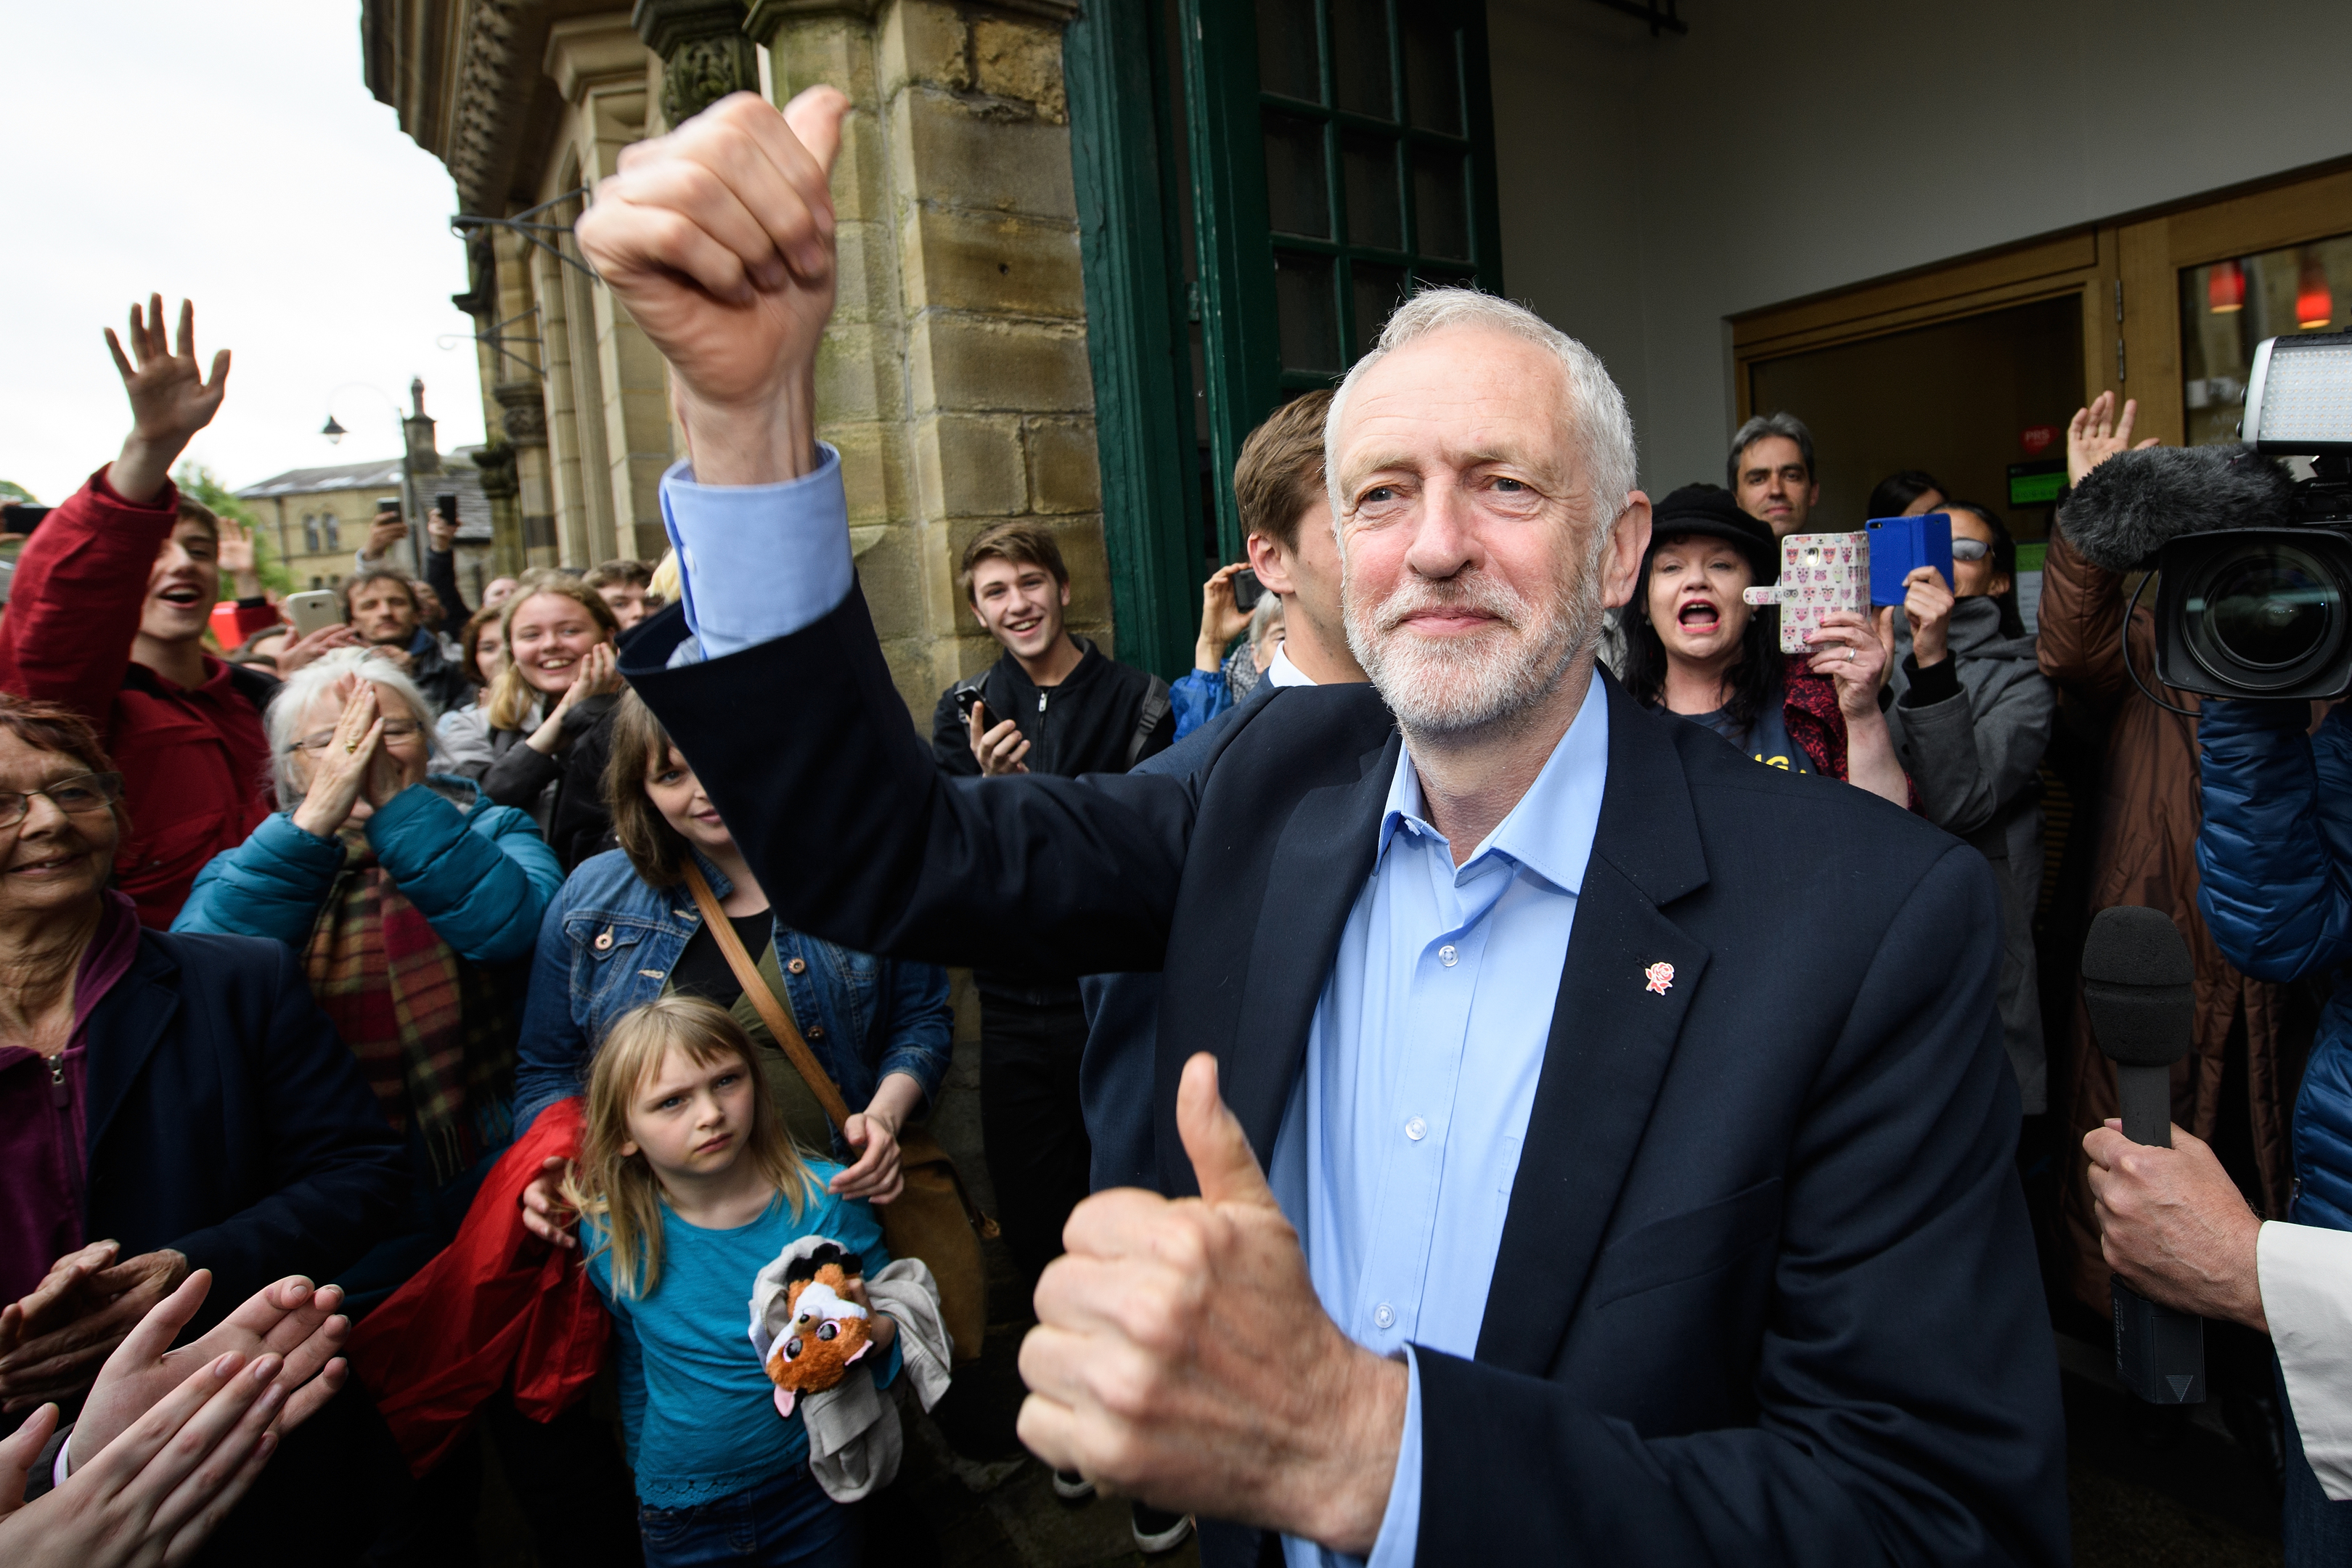 Jeremy Corbyn waves as he arrives before speaking to hundreds of people who attended an election rally on May 15, 2017 in Hebden Bridge.